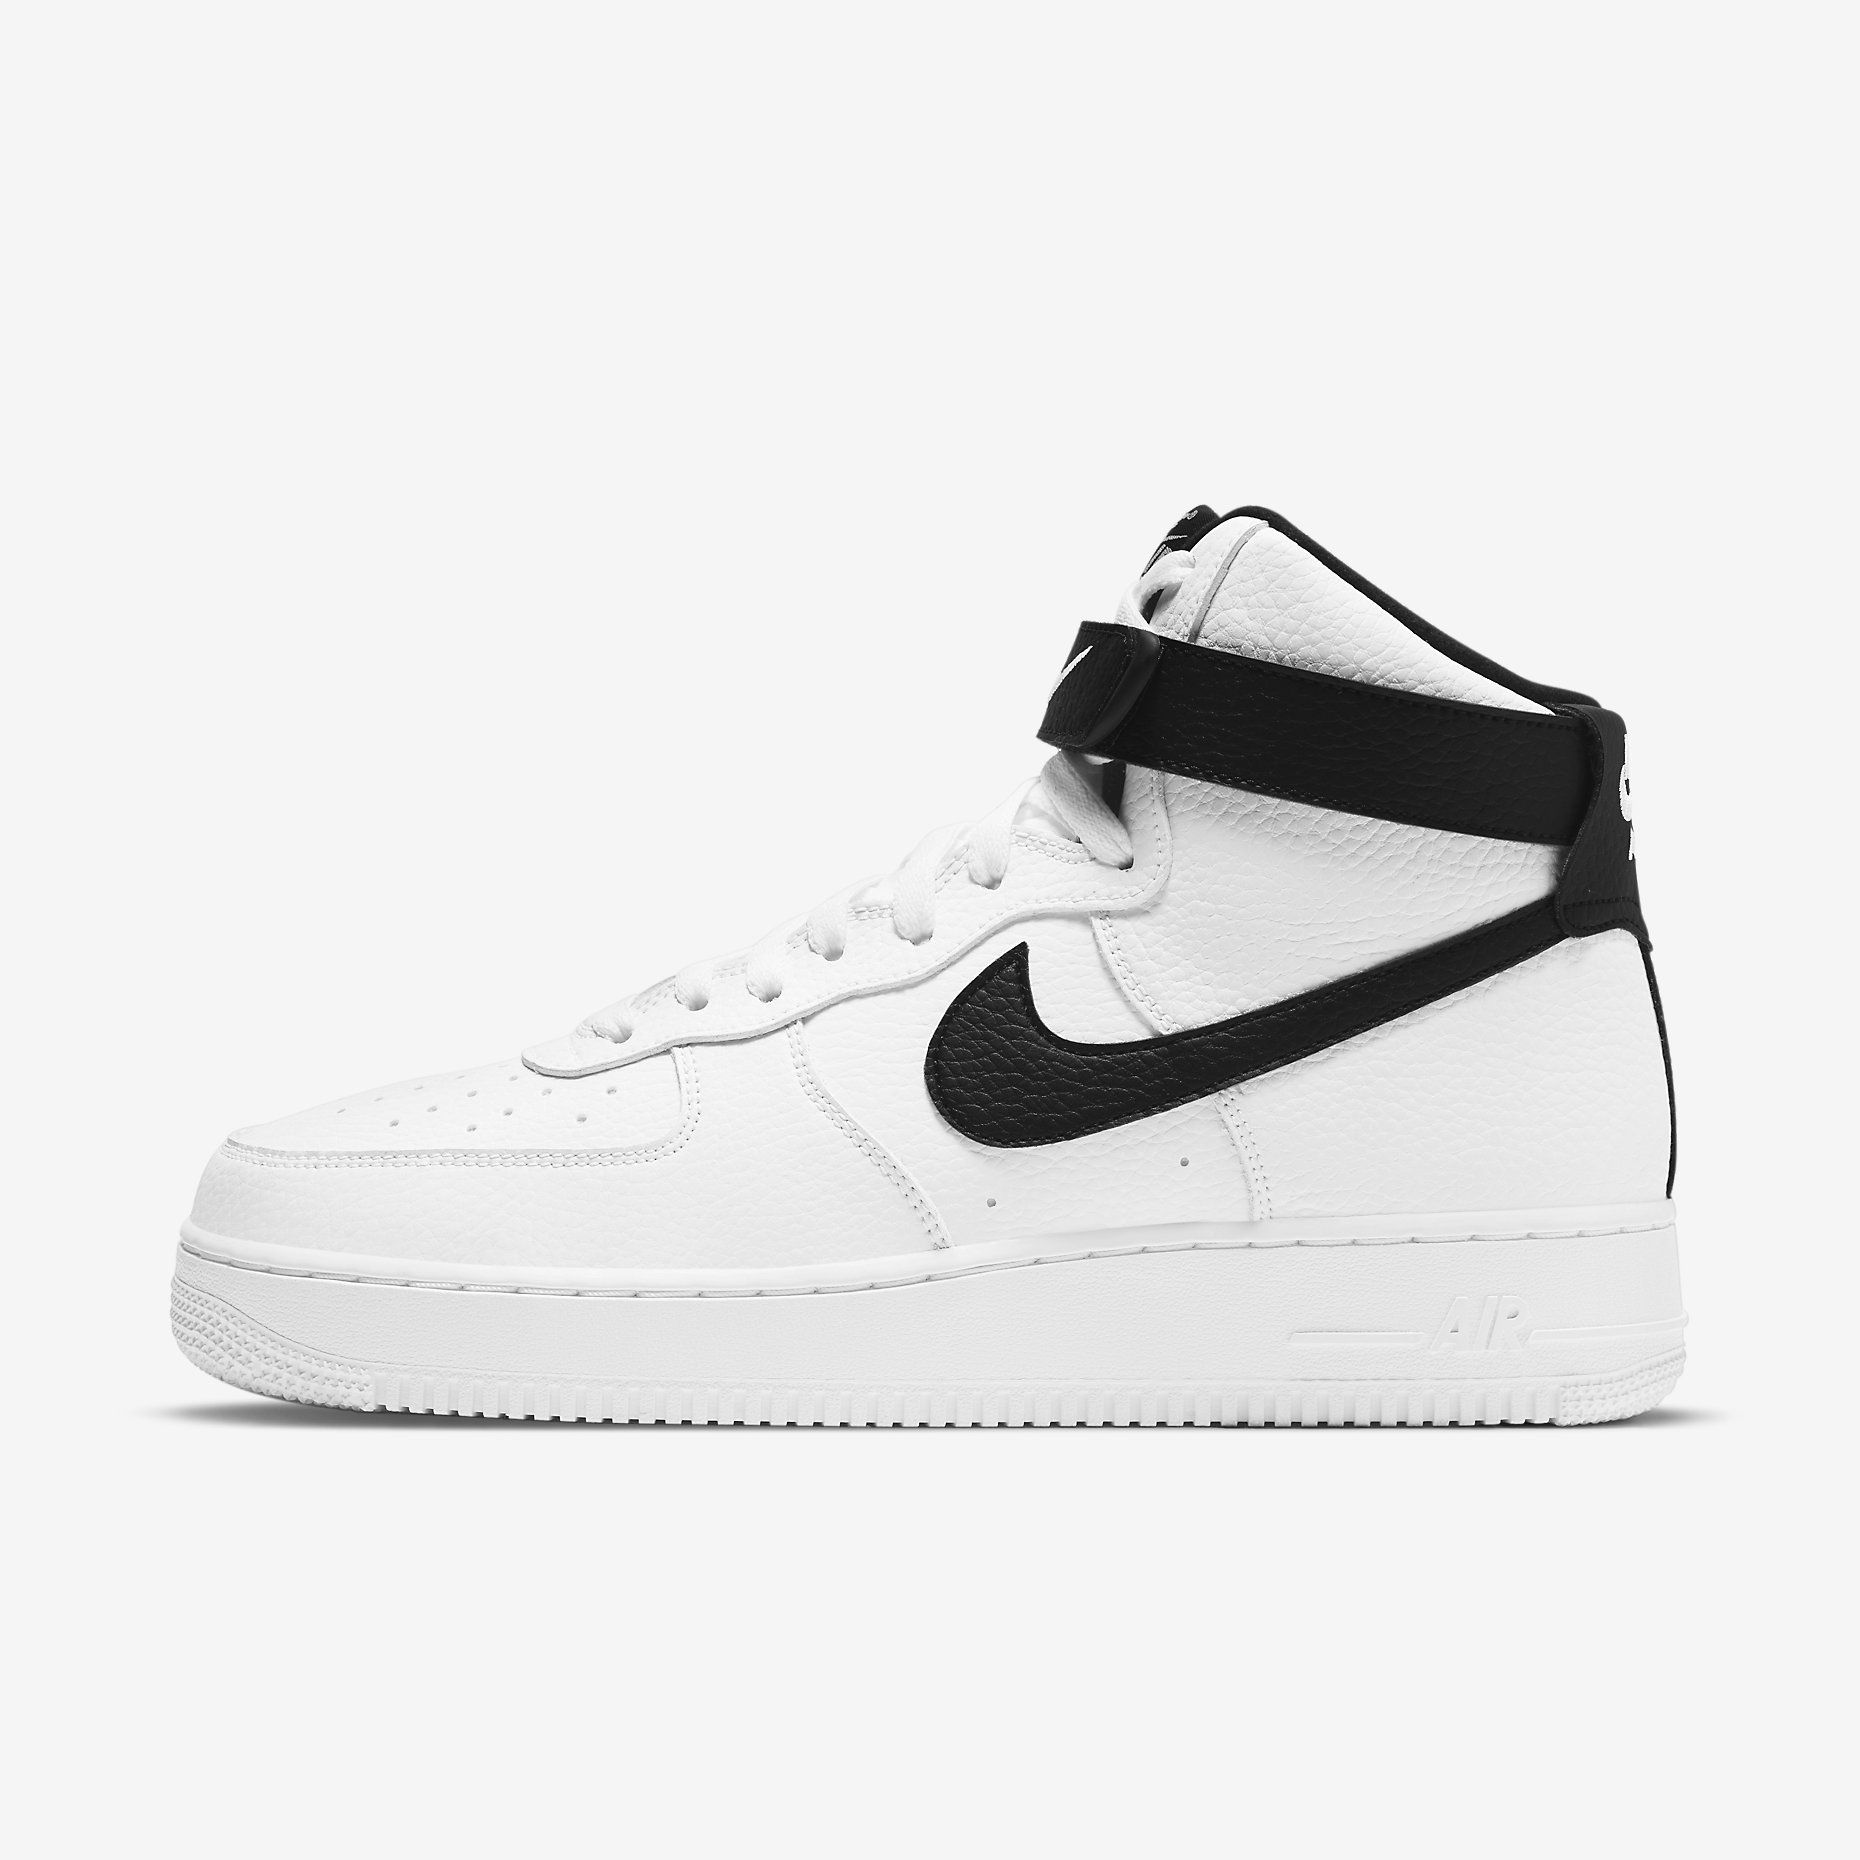 Nike Air Force 1 '07 High 'White/Black'}